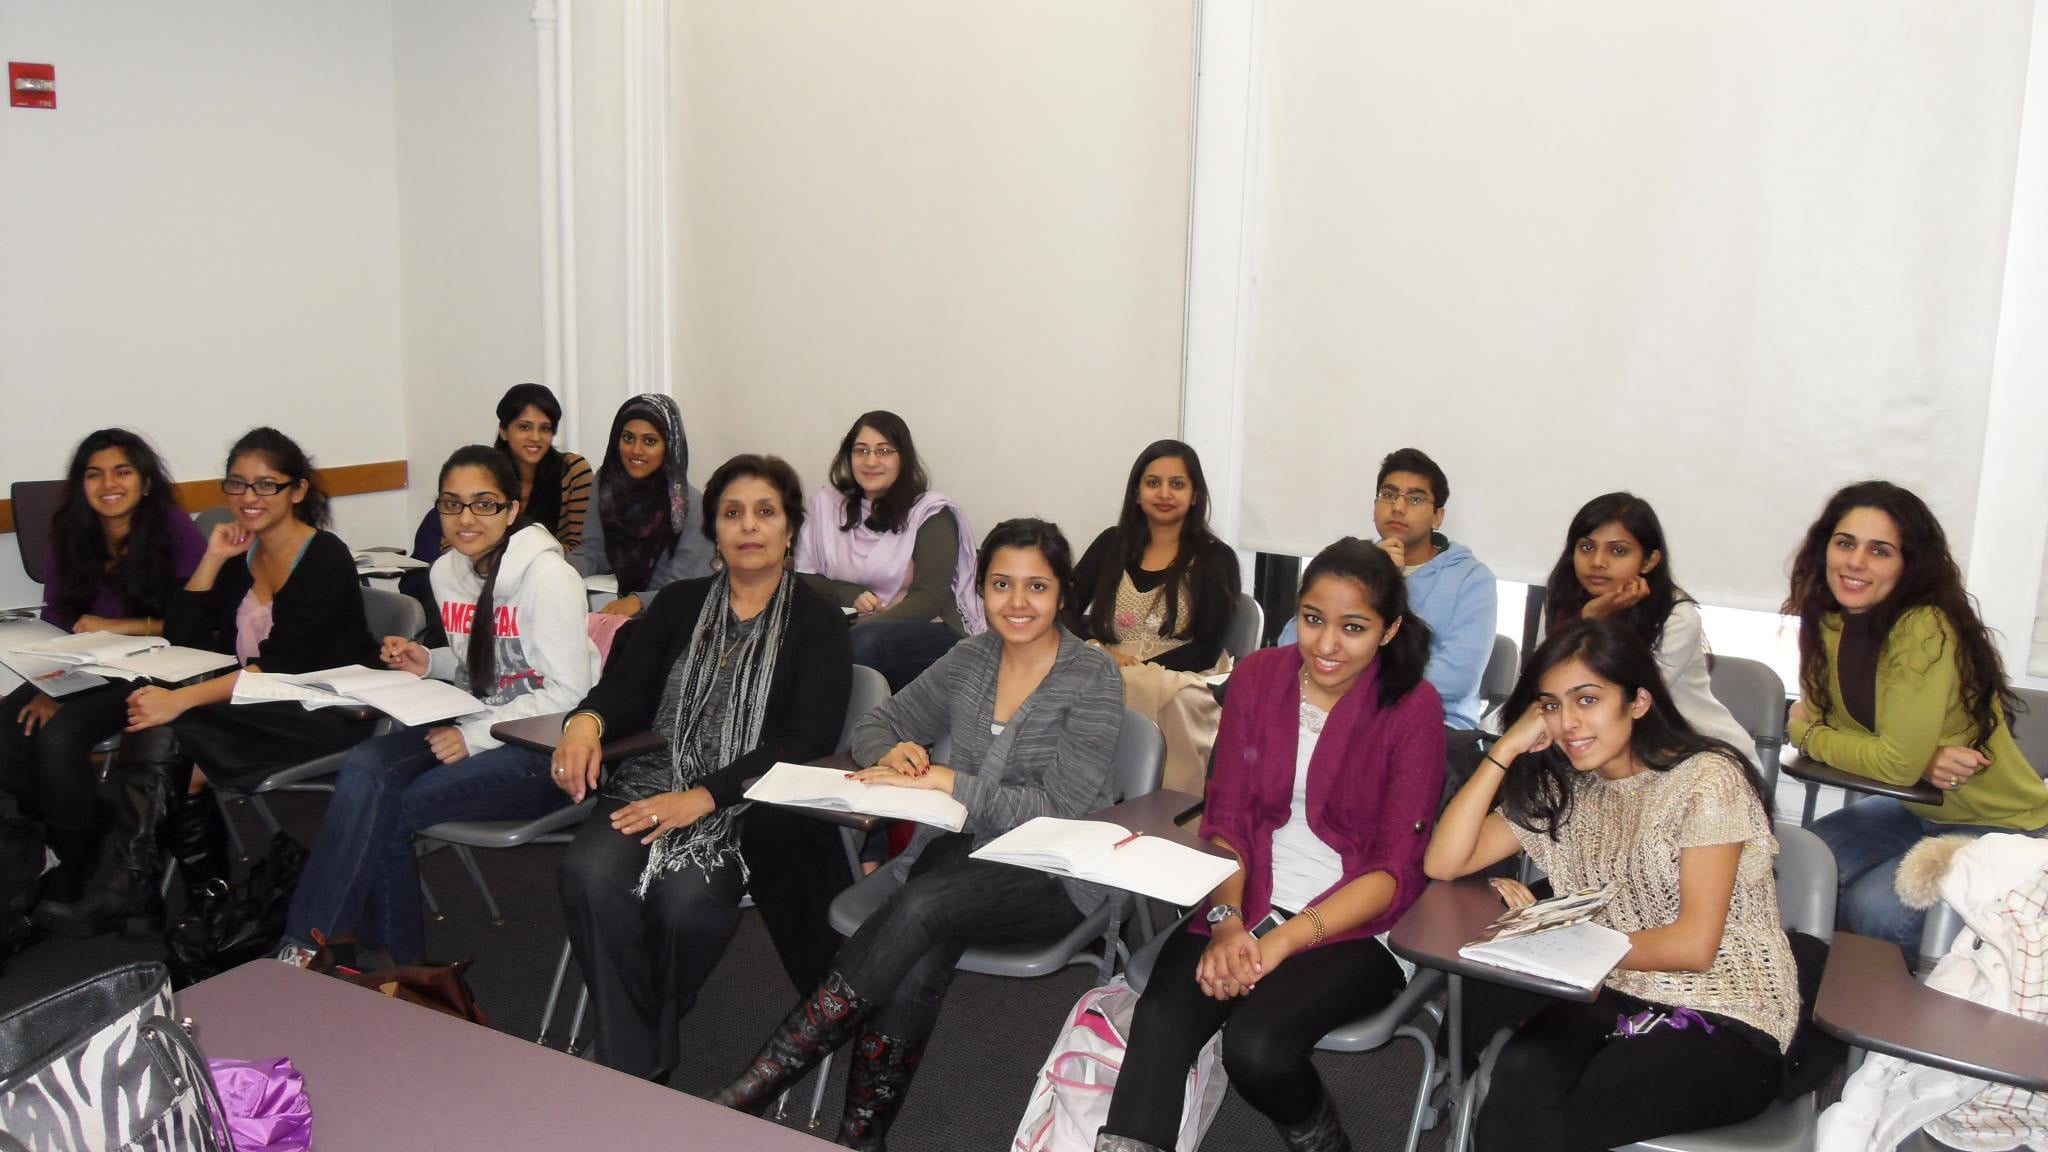 Professor Naqvi with her students.—Photo courtesy Tahira Naqvi